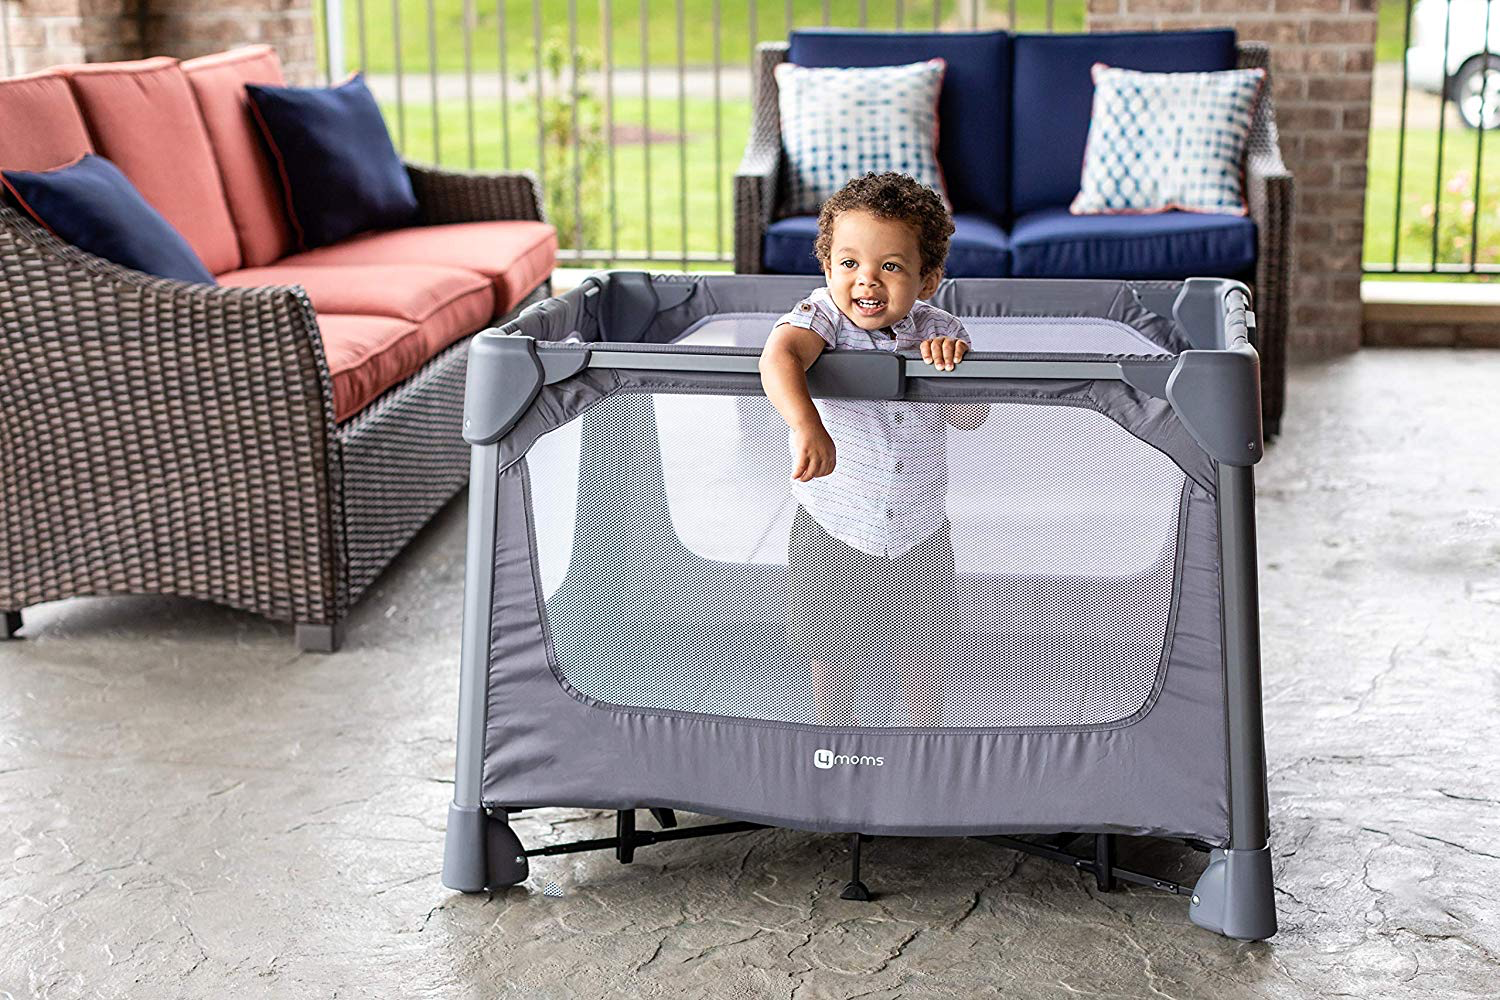 4moms breeze review play yard